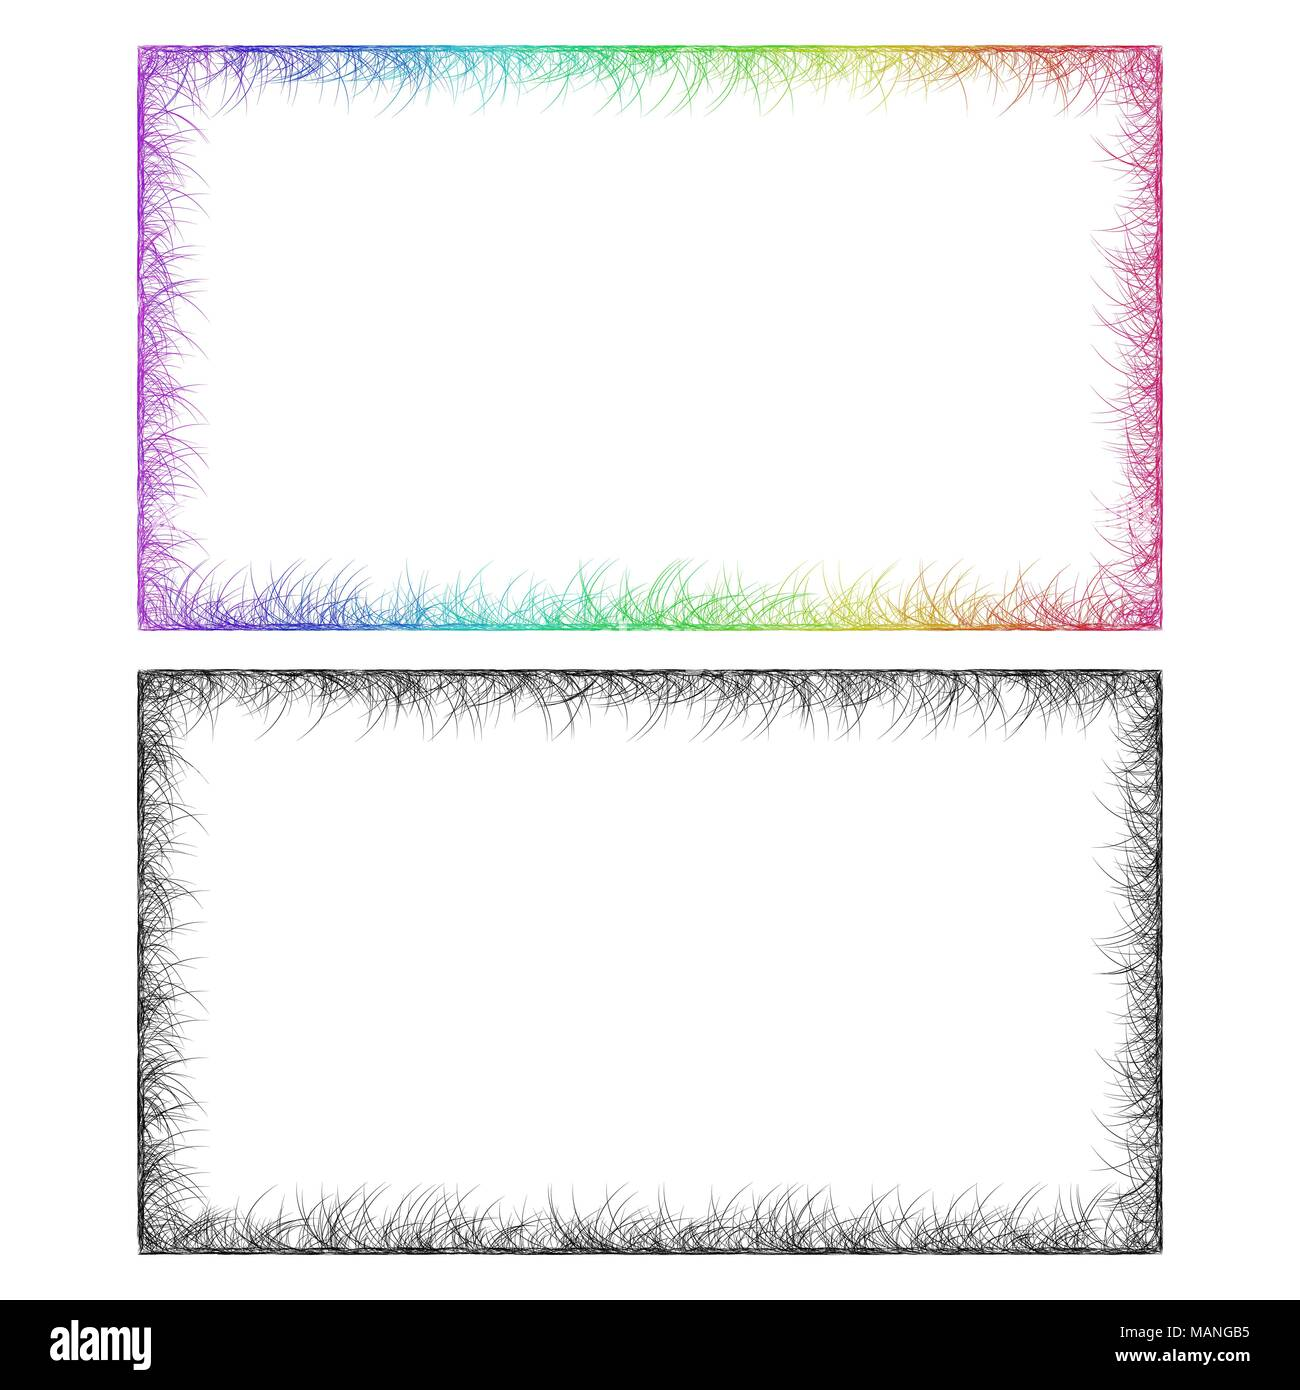 colorful page border. Colorful and monochrome card frame designs  Stock Vector Abstract Rainbow Page Border Images Alamy